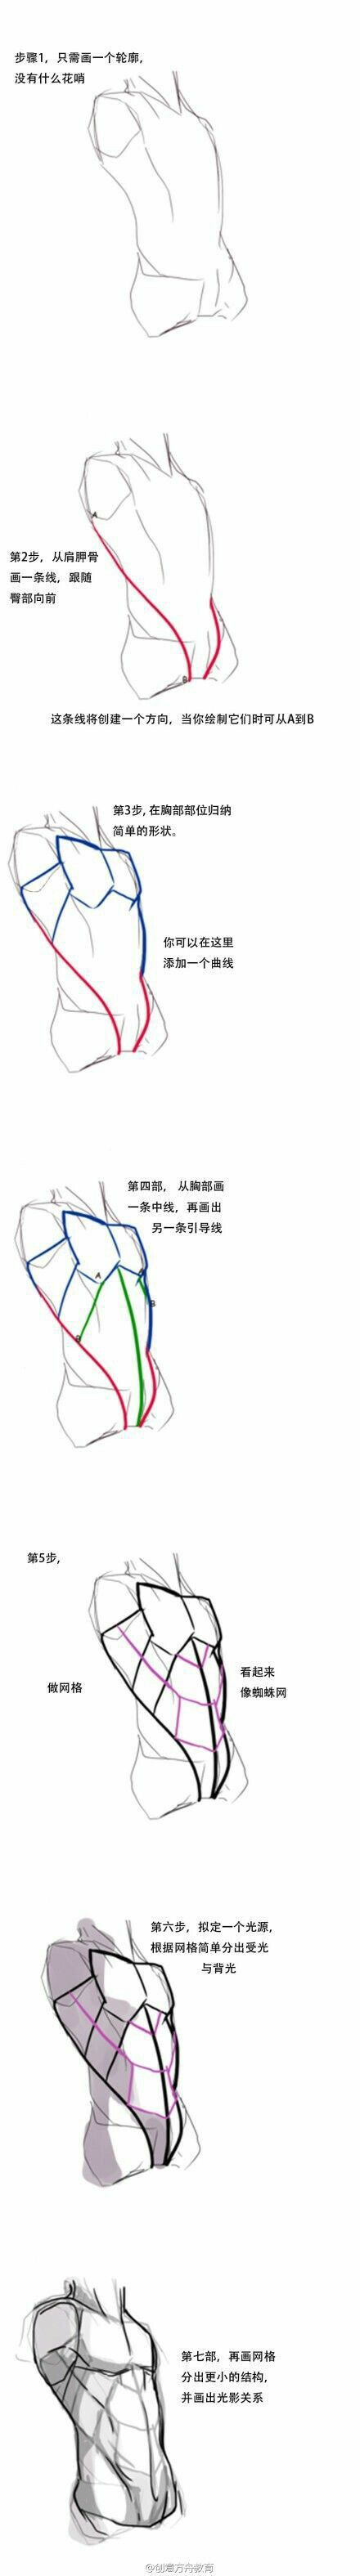 This doesn't really map out so much as capture the rythem of anatomy. The line moving from the back to the front capture the top of the lattisimus dorsi, the rhythm in the obliques , and the edge of the pecs. This mapping might be good for gesture, but you probably should be familiar with the muscles in the torso.